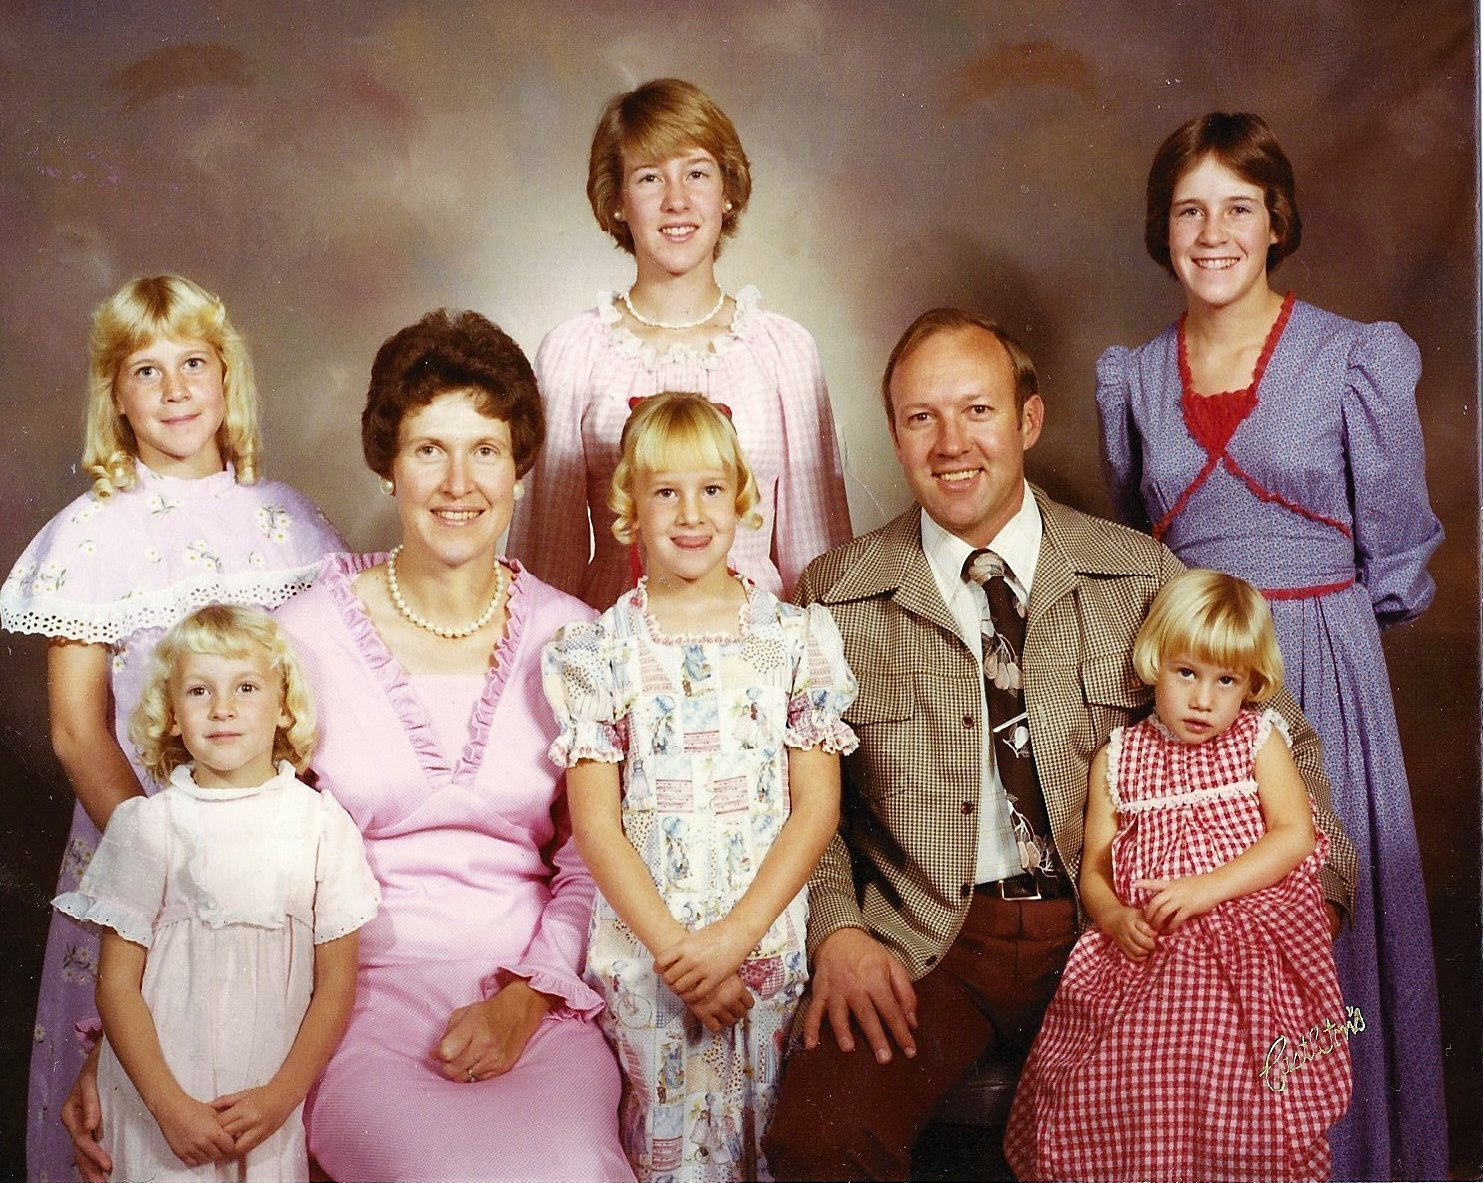 Me, my five sisters, and my parents.